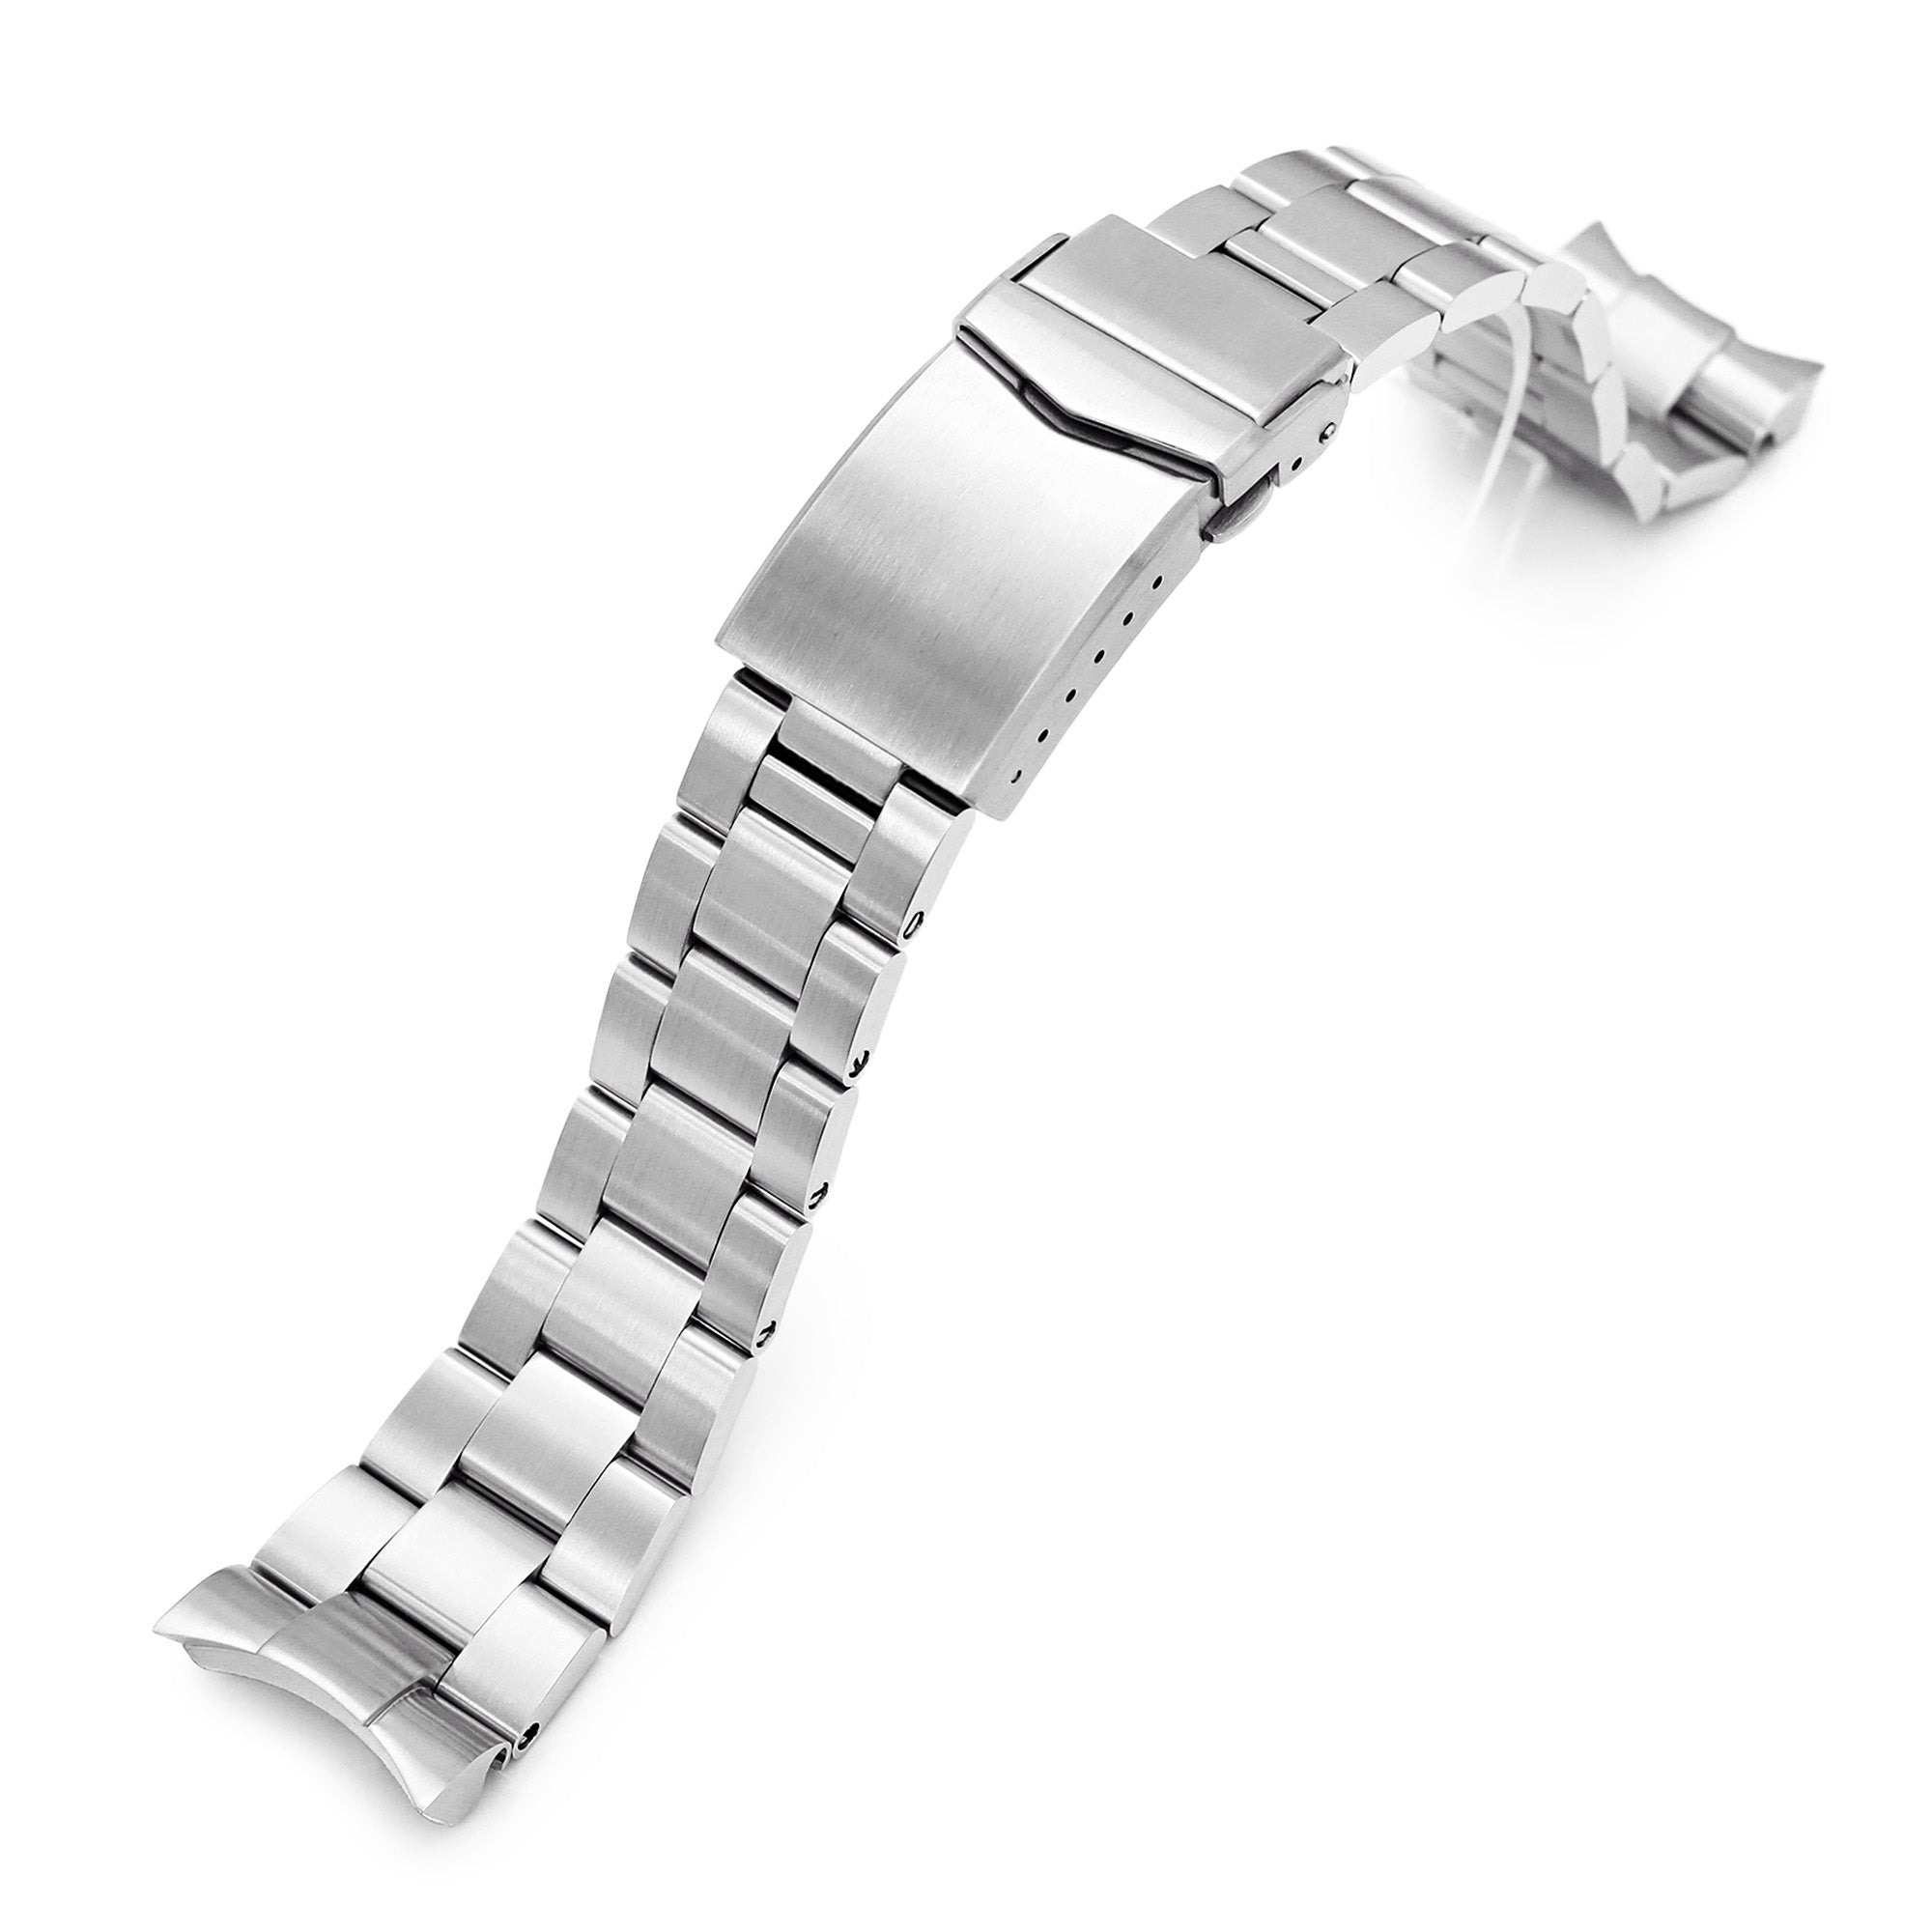 22mm Super-O Boyer 316L Stainless Steel Watch Band for Orient Mako II , Ray II, V-Clasp Button Double Lock Strapcode Watch Bands